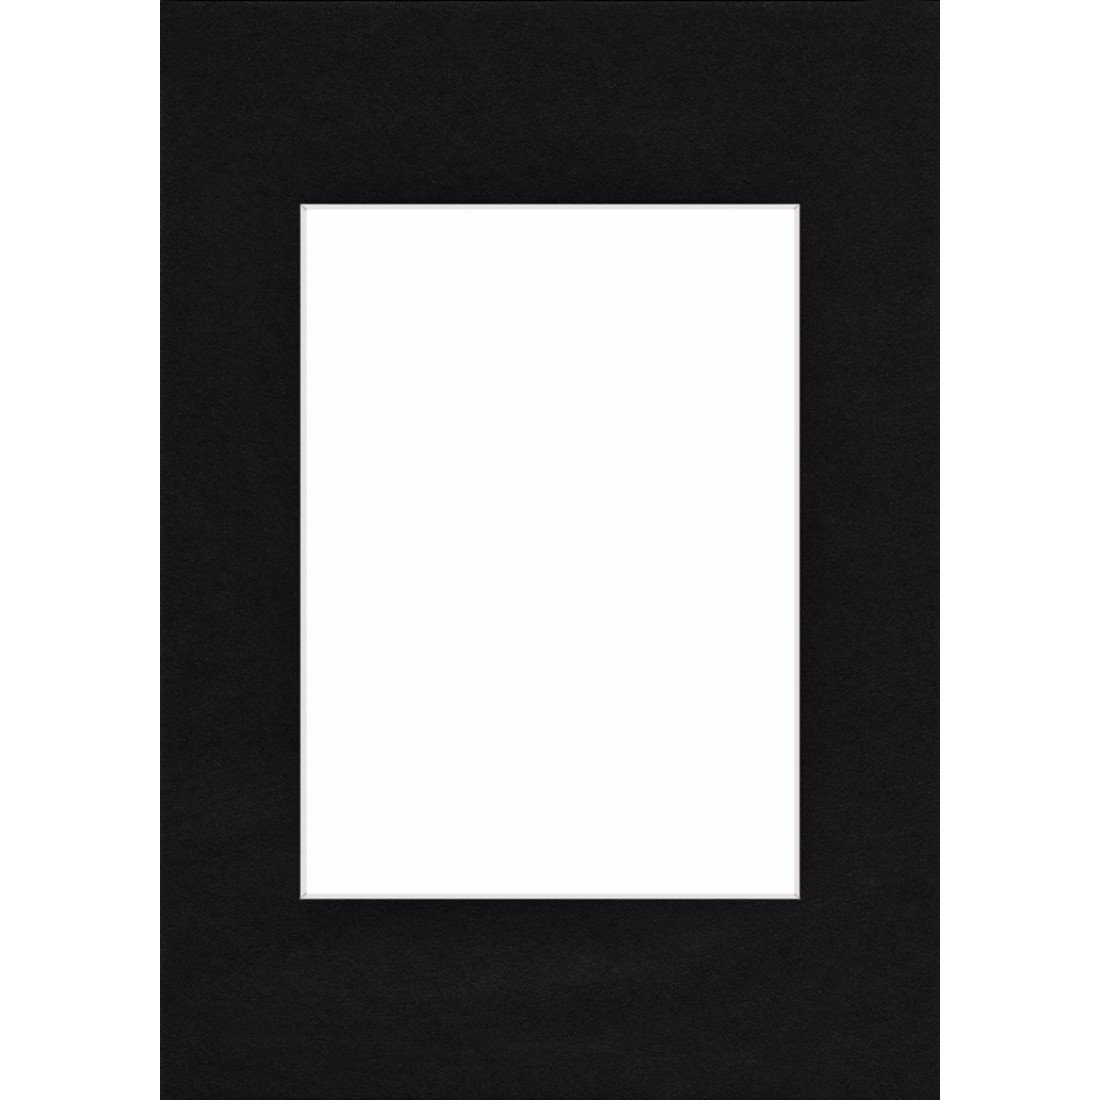 Hama Smooth Black Passepartout 13x18/20x30 cm 63411